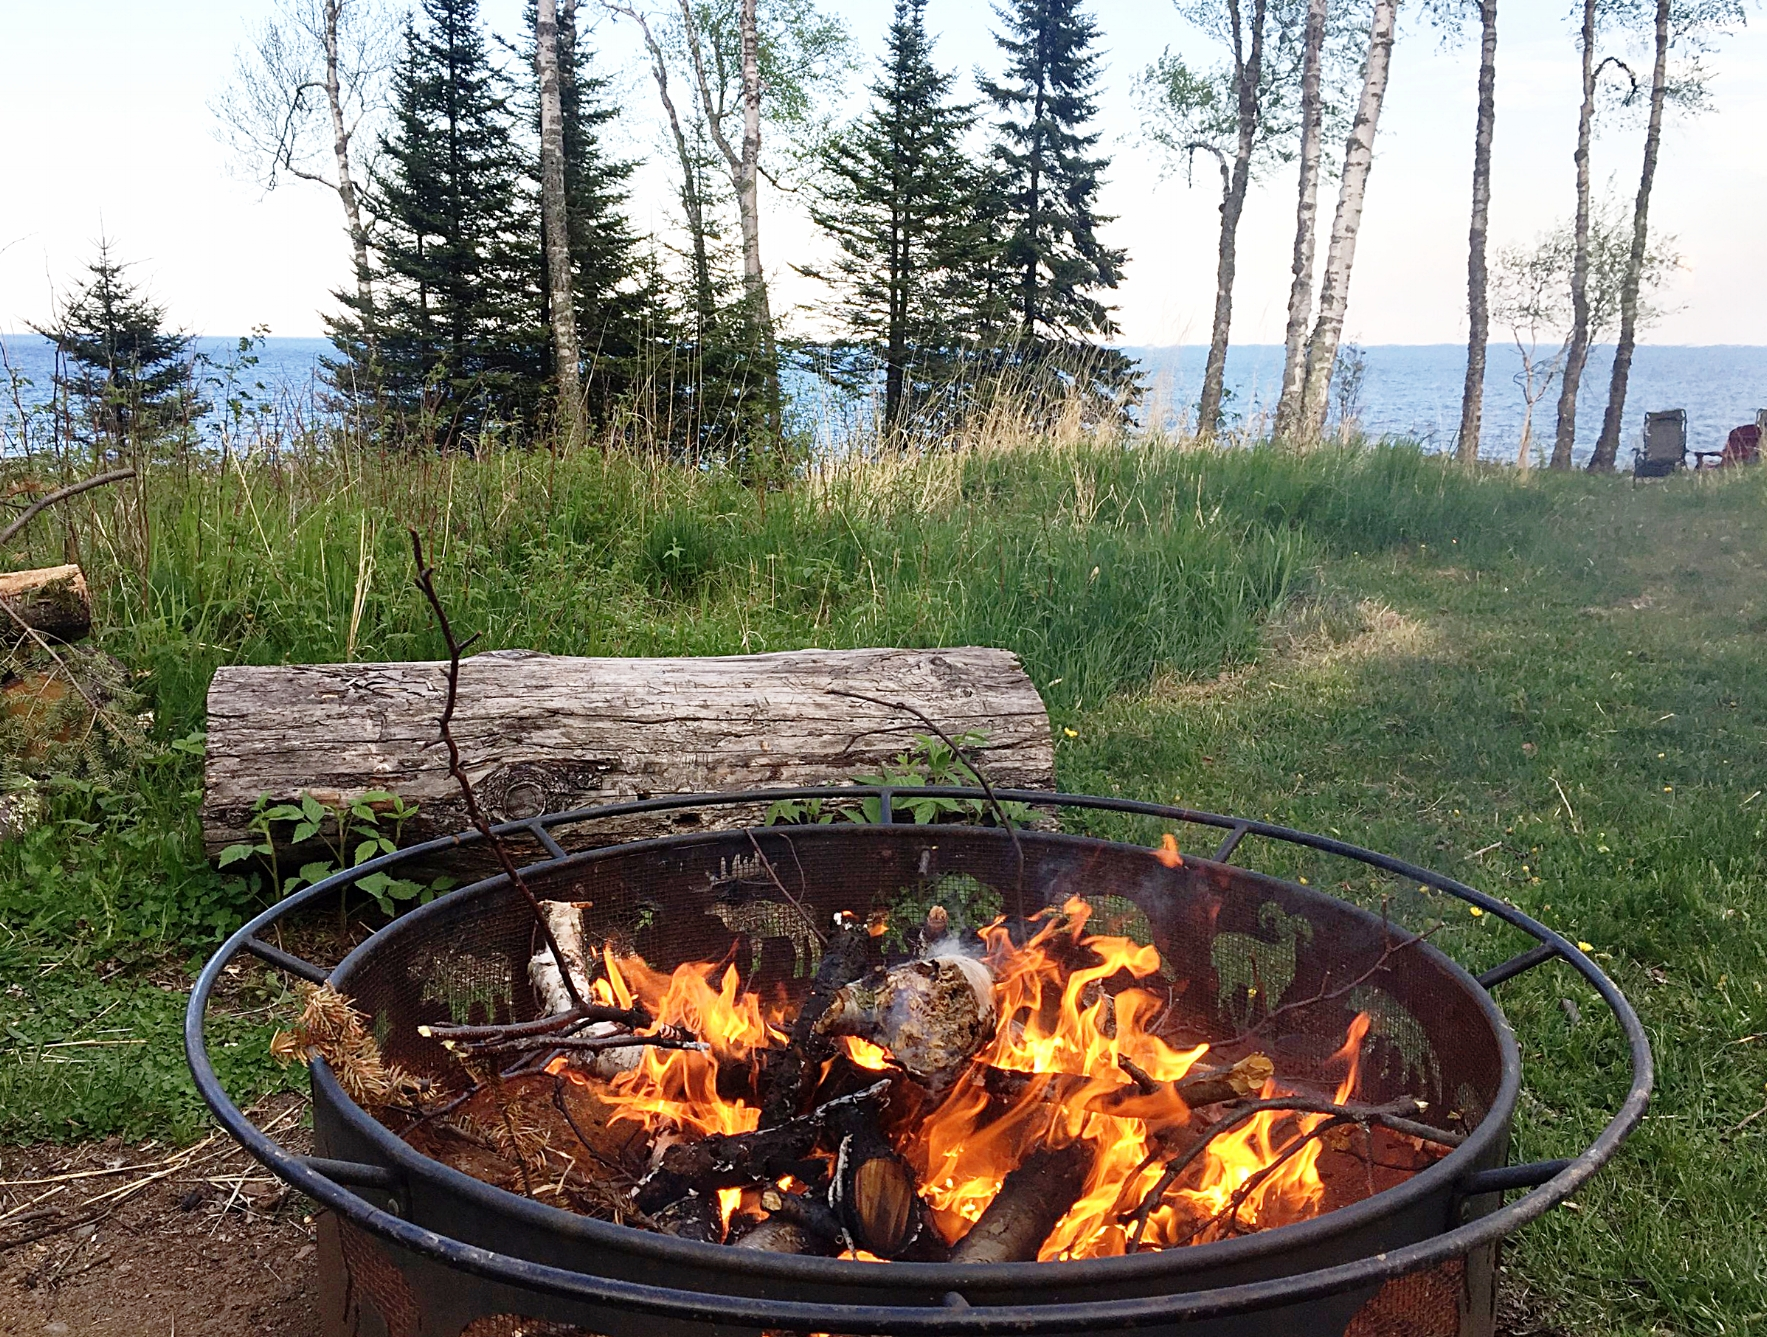 imagine roasting marshmallows at a campfire on lake superior.